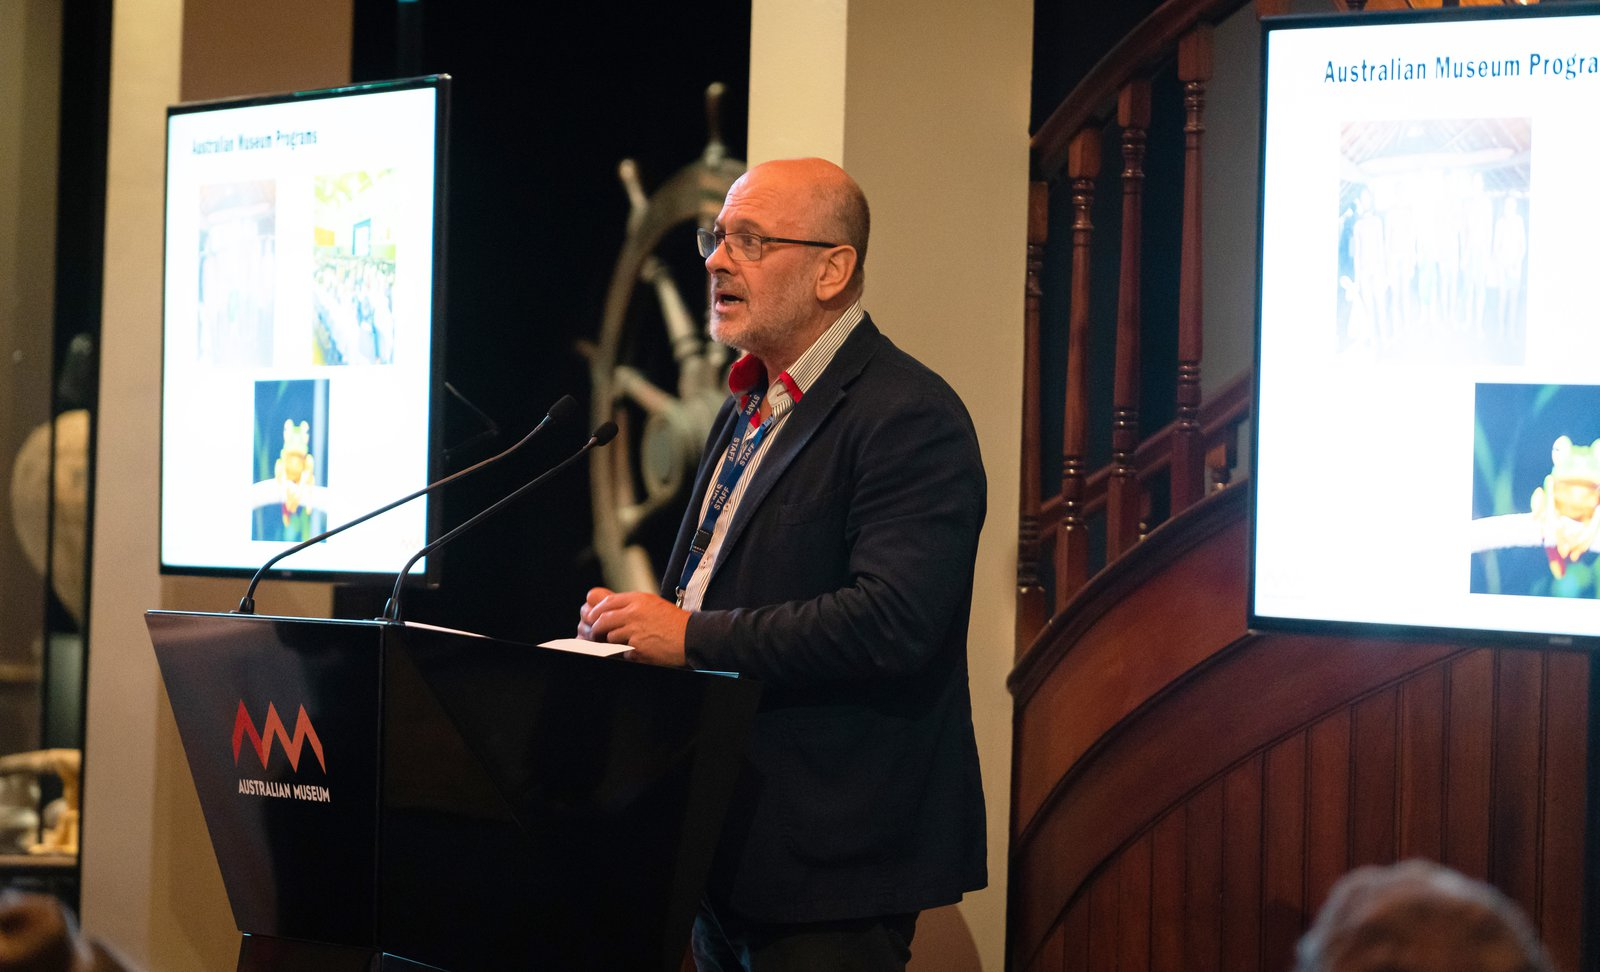 Tim Flannery at the Australian Museum, 4 June 2019